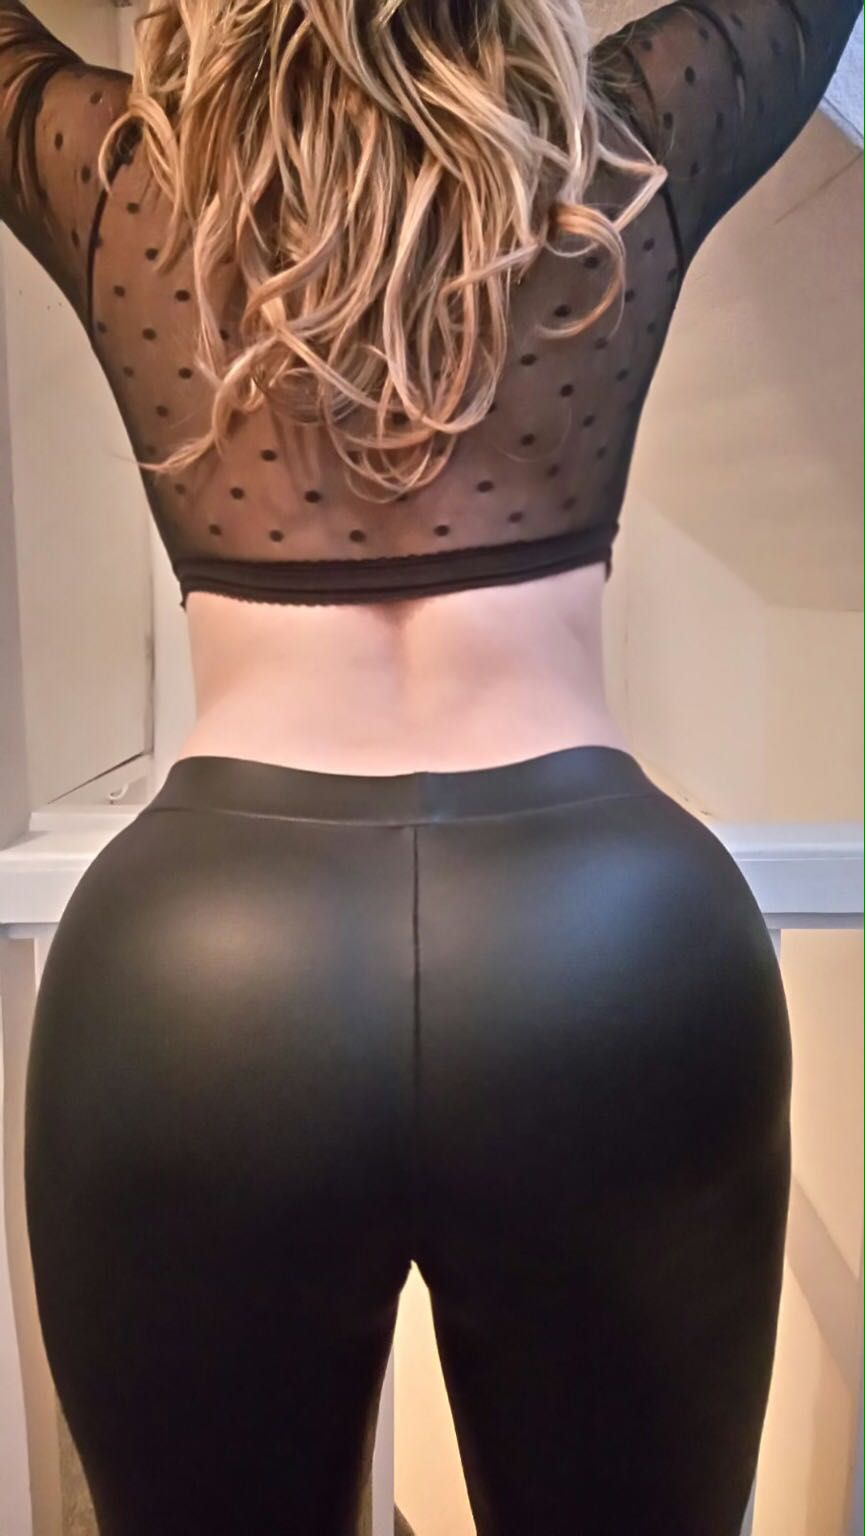 Hello gentlrmen! Im Susann, my mother is Irish (UK) and dad is Brazilian.sexy/hot mix! I am a TOTALLY INDEPENDENT 0738752751